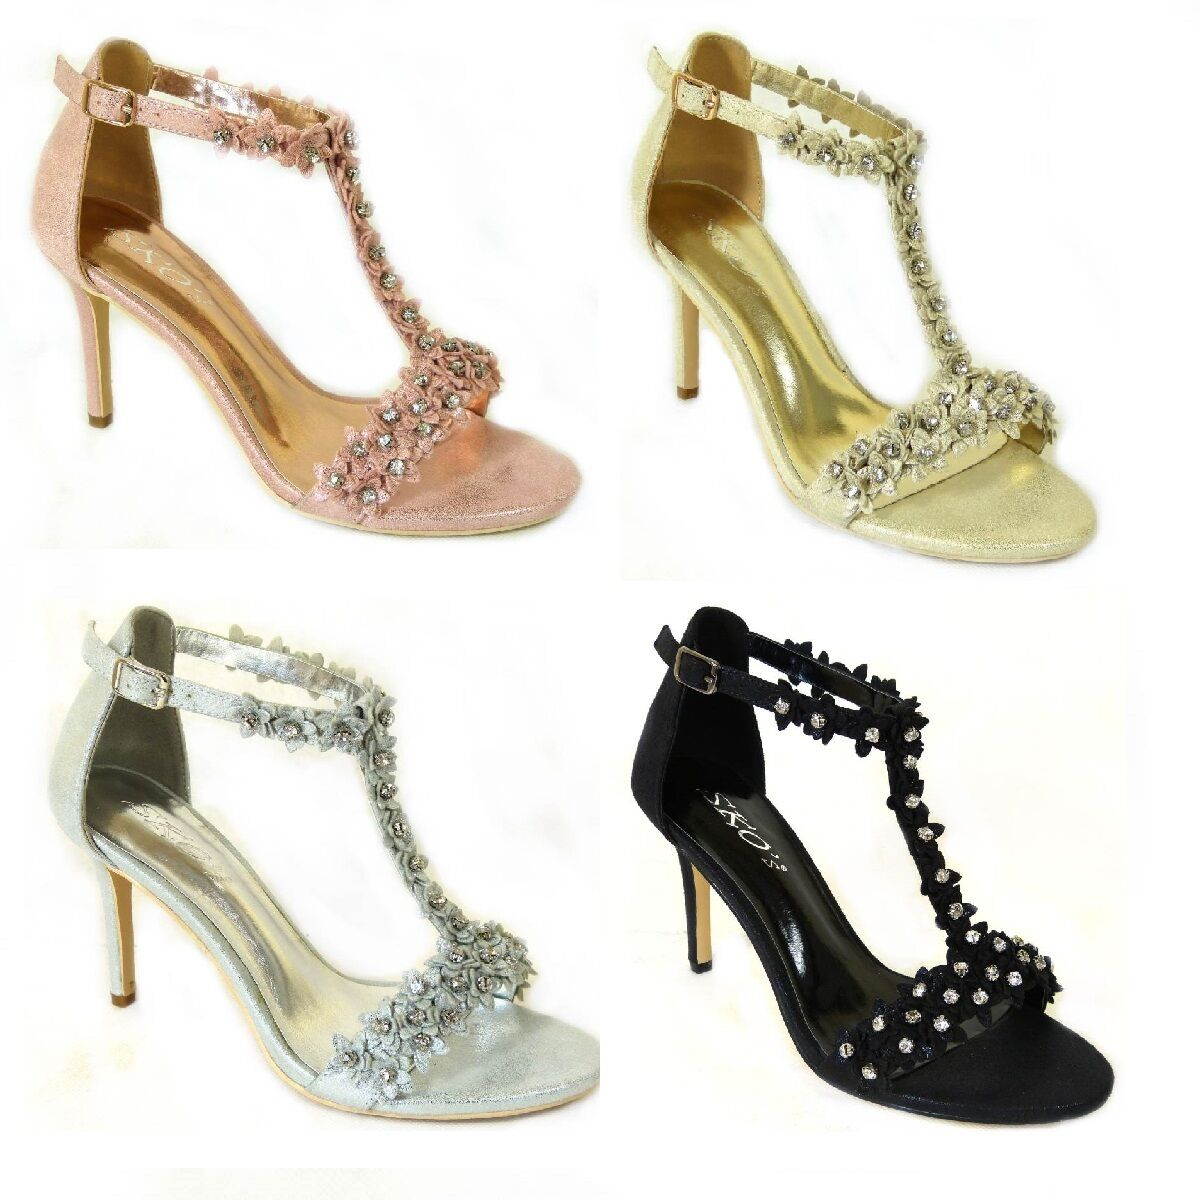 06f5362ee7e1 Details about Womens Ladies Mid Heel Diamante Bridal Wedding Sandals Flower Party  Shoes Size